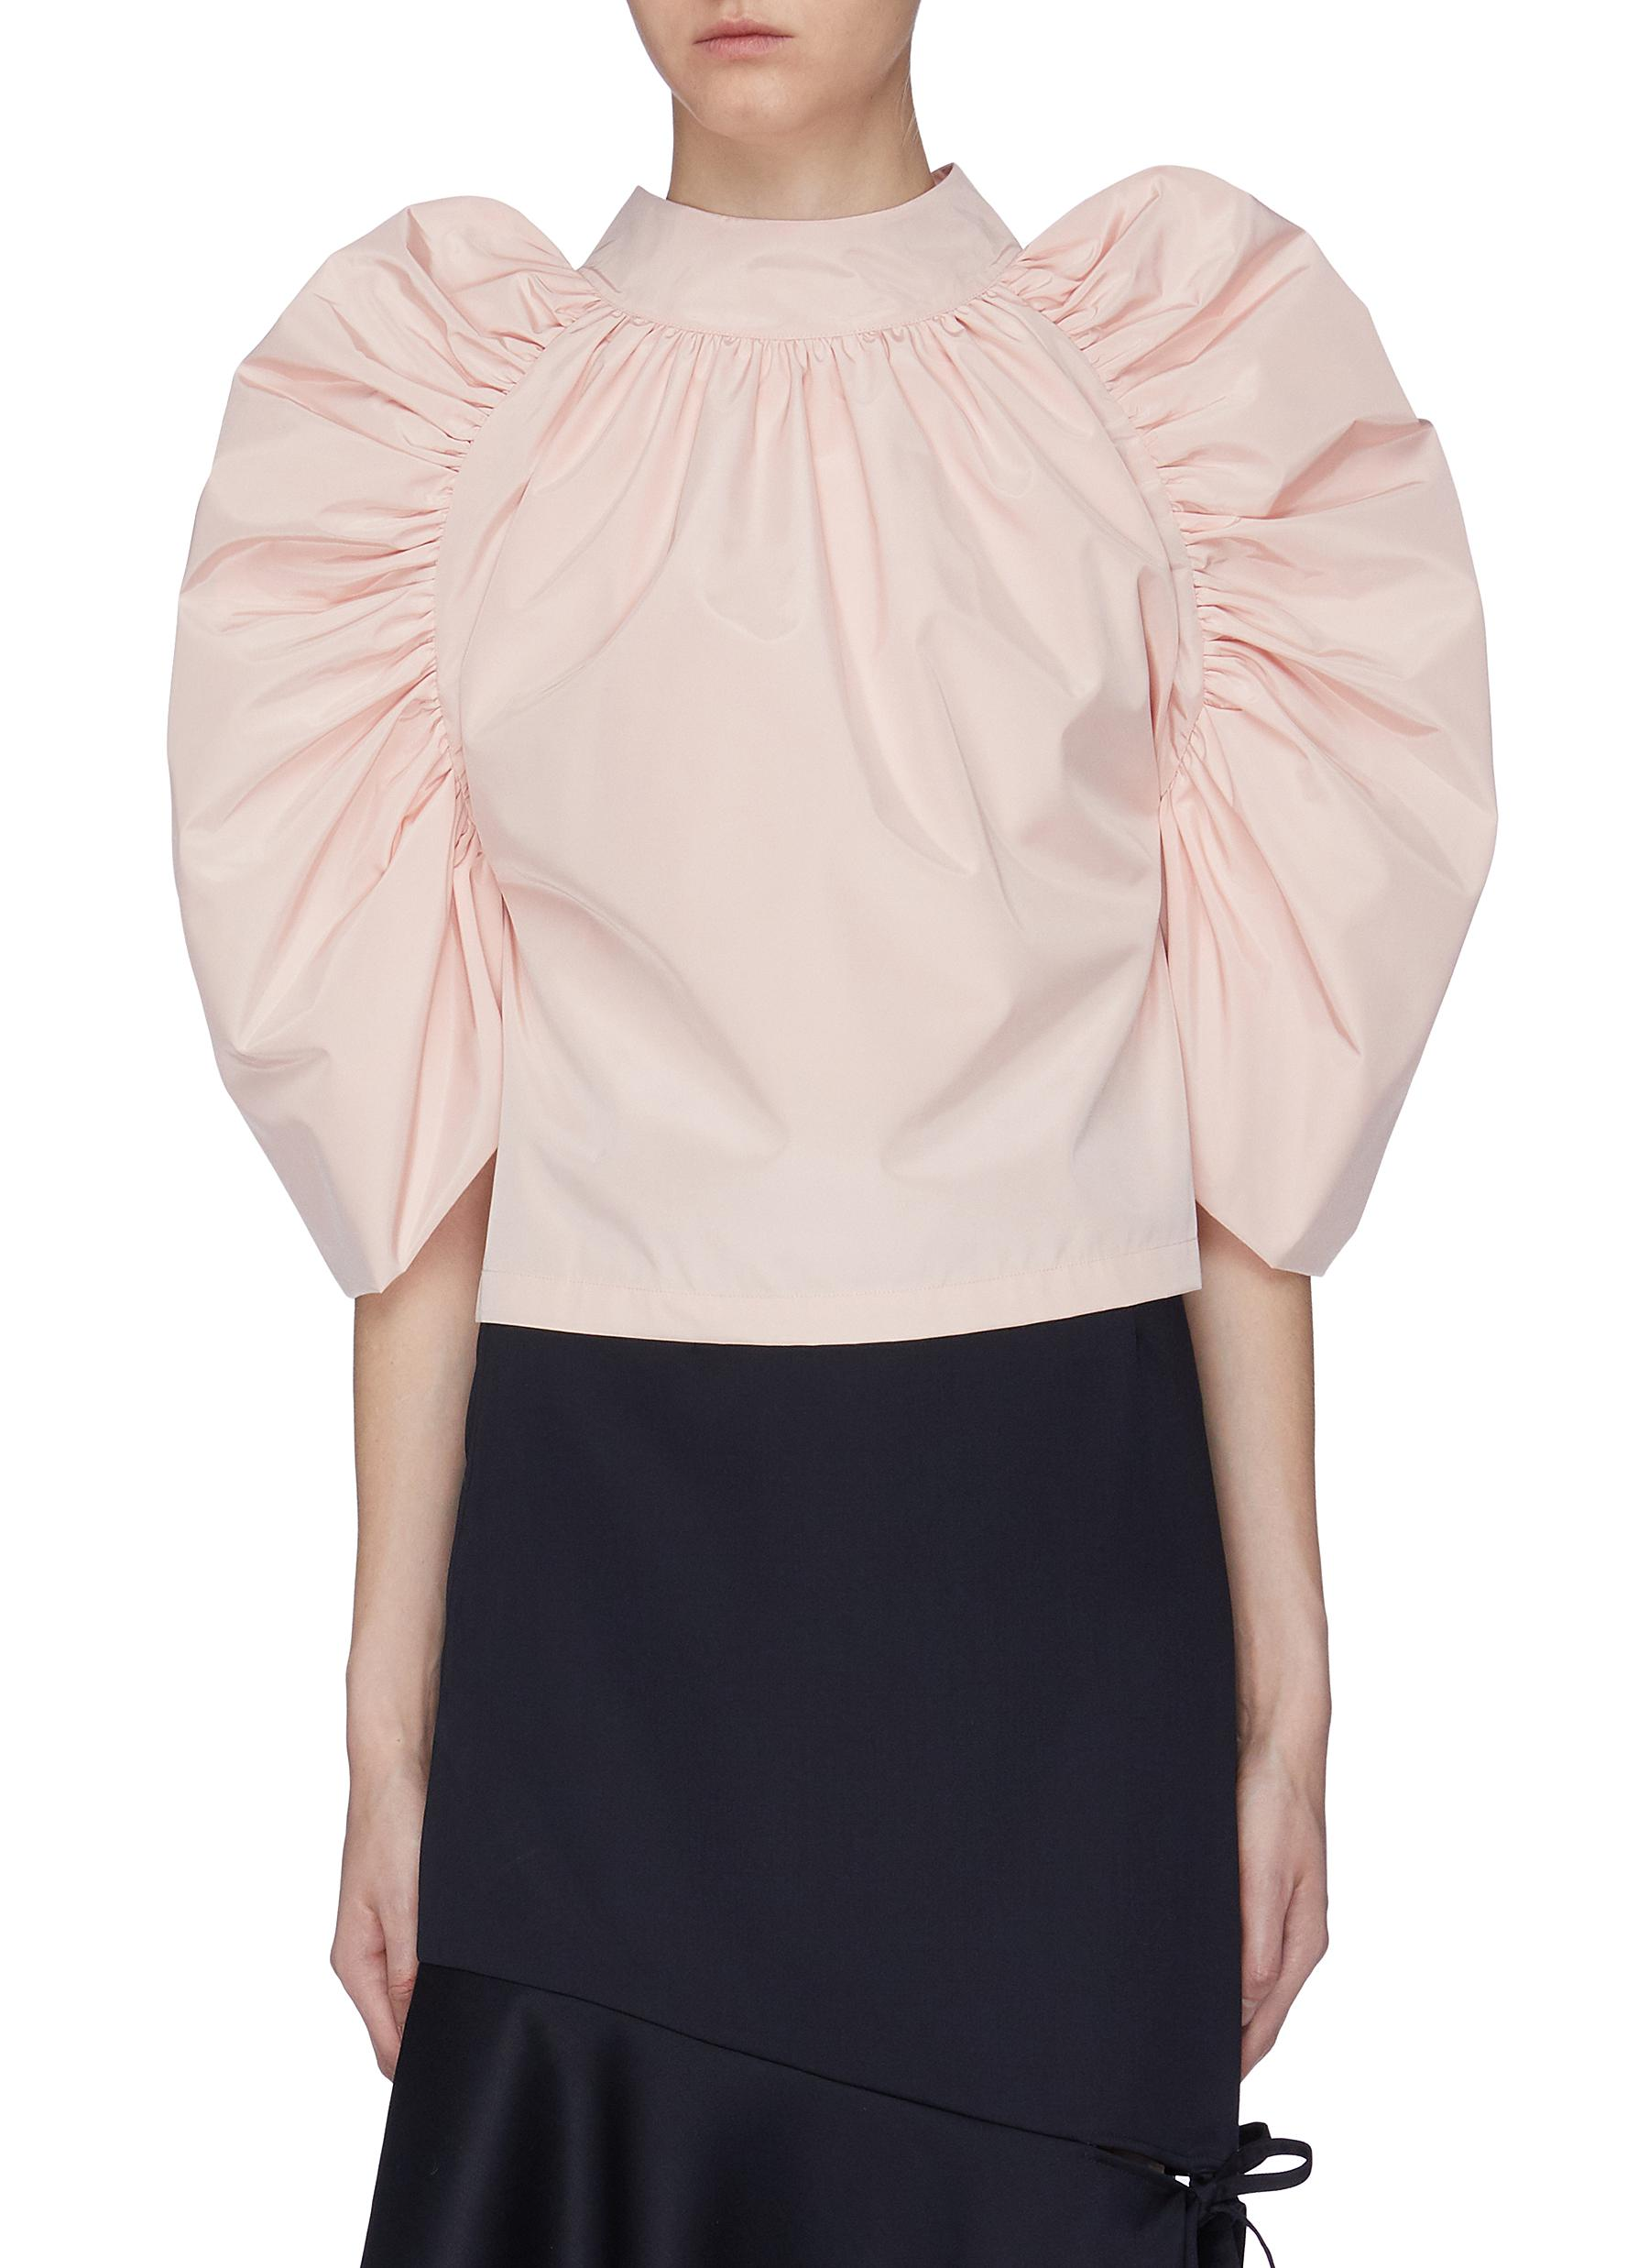 Bow tie back gathered puff sleeve top by Ming Ma